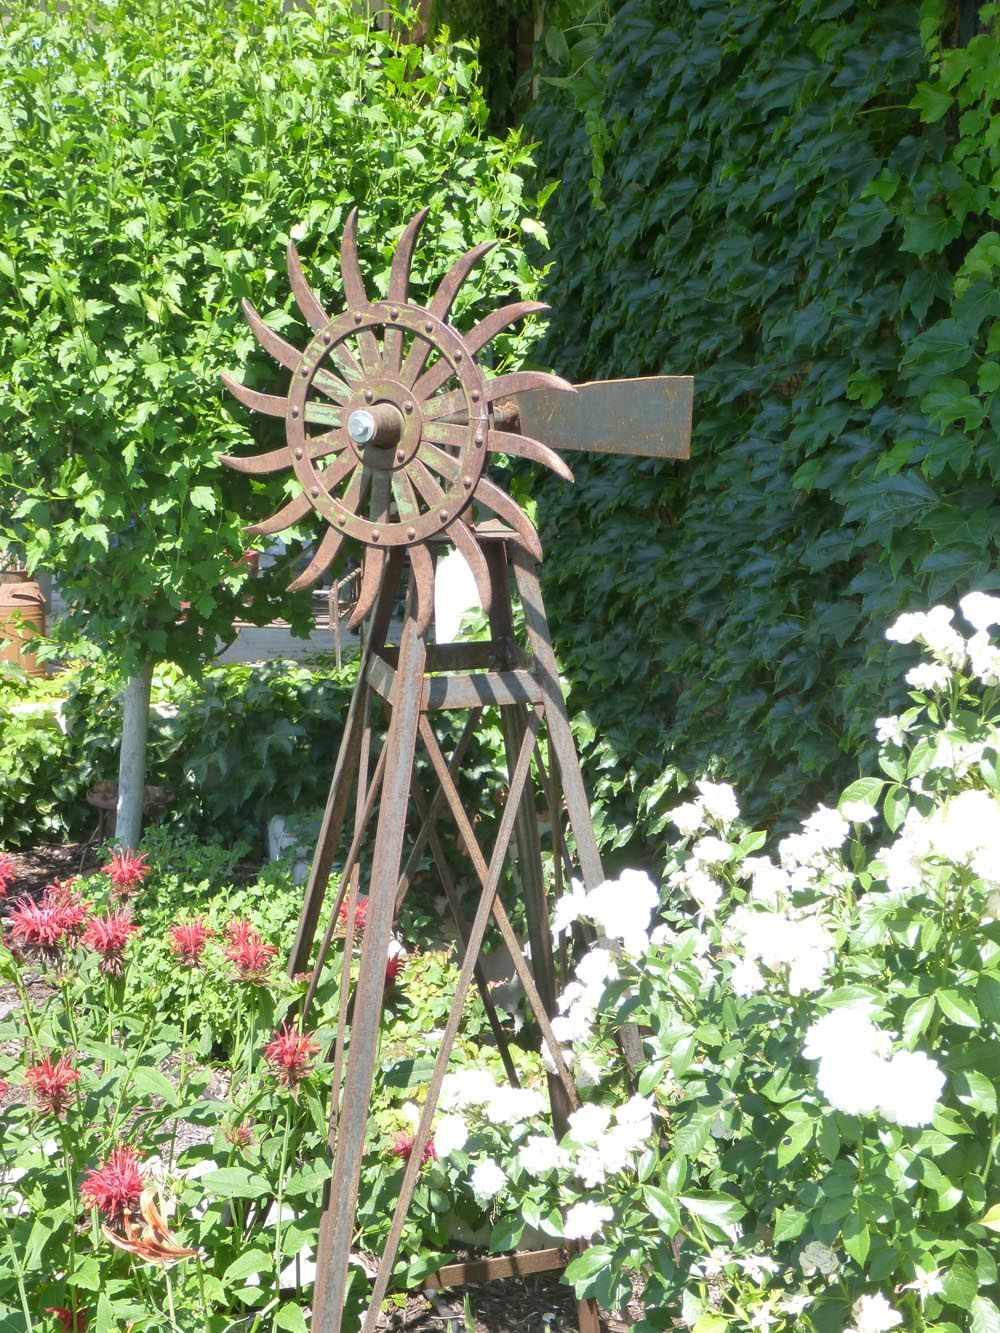 rustic utah item # 26: decorative windmill for use as yard art